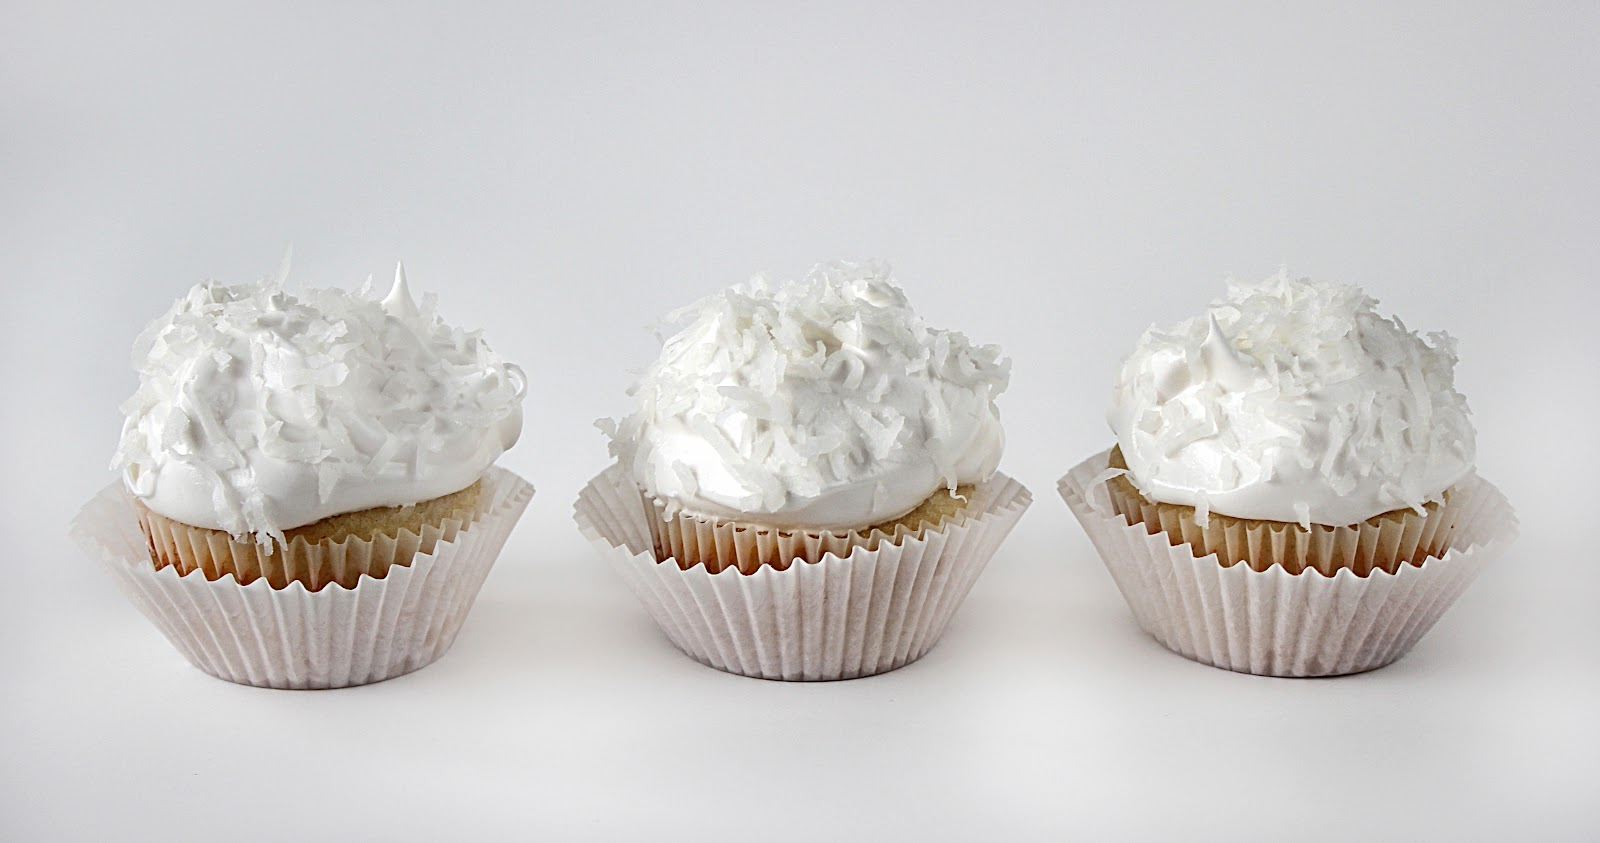 Coconut Cream Pie is one of my favorite desserts. And these cupcakes ...